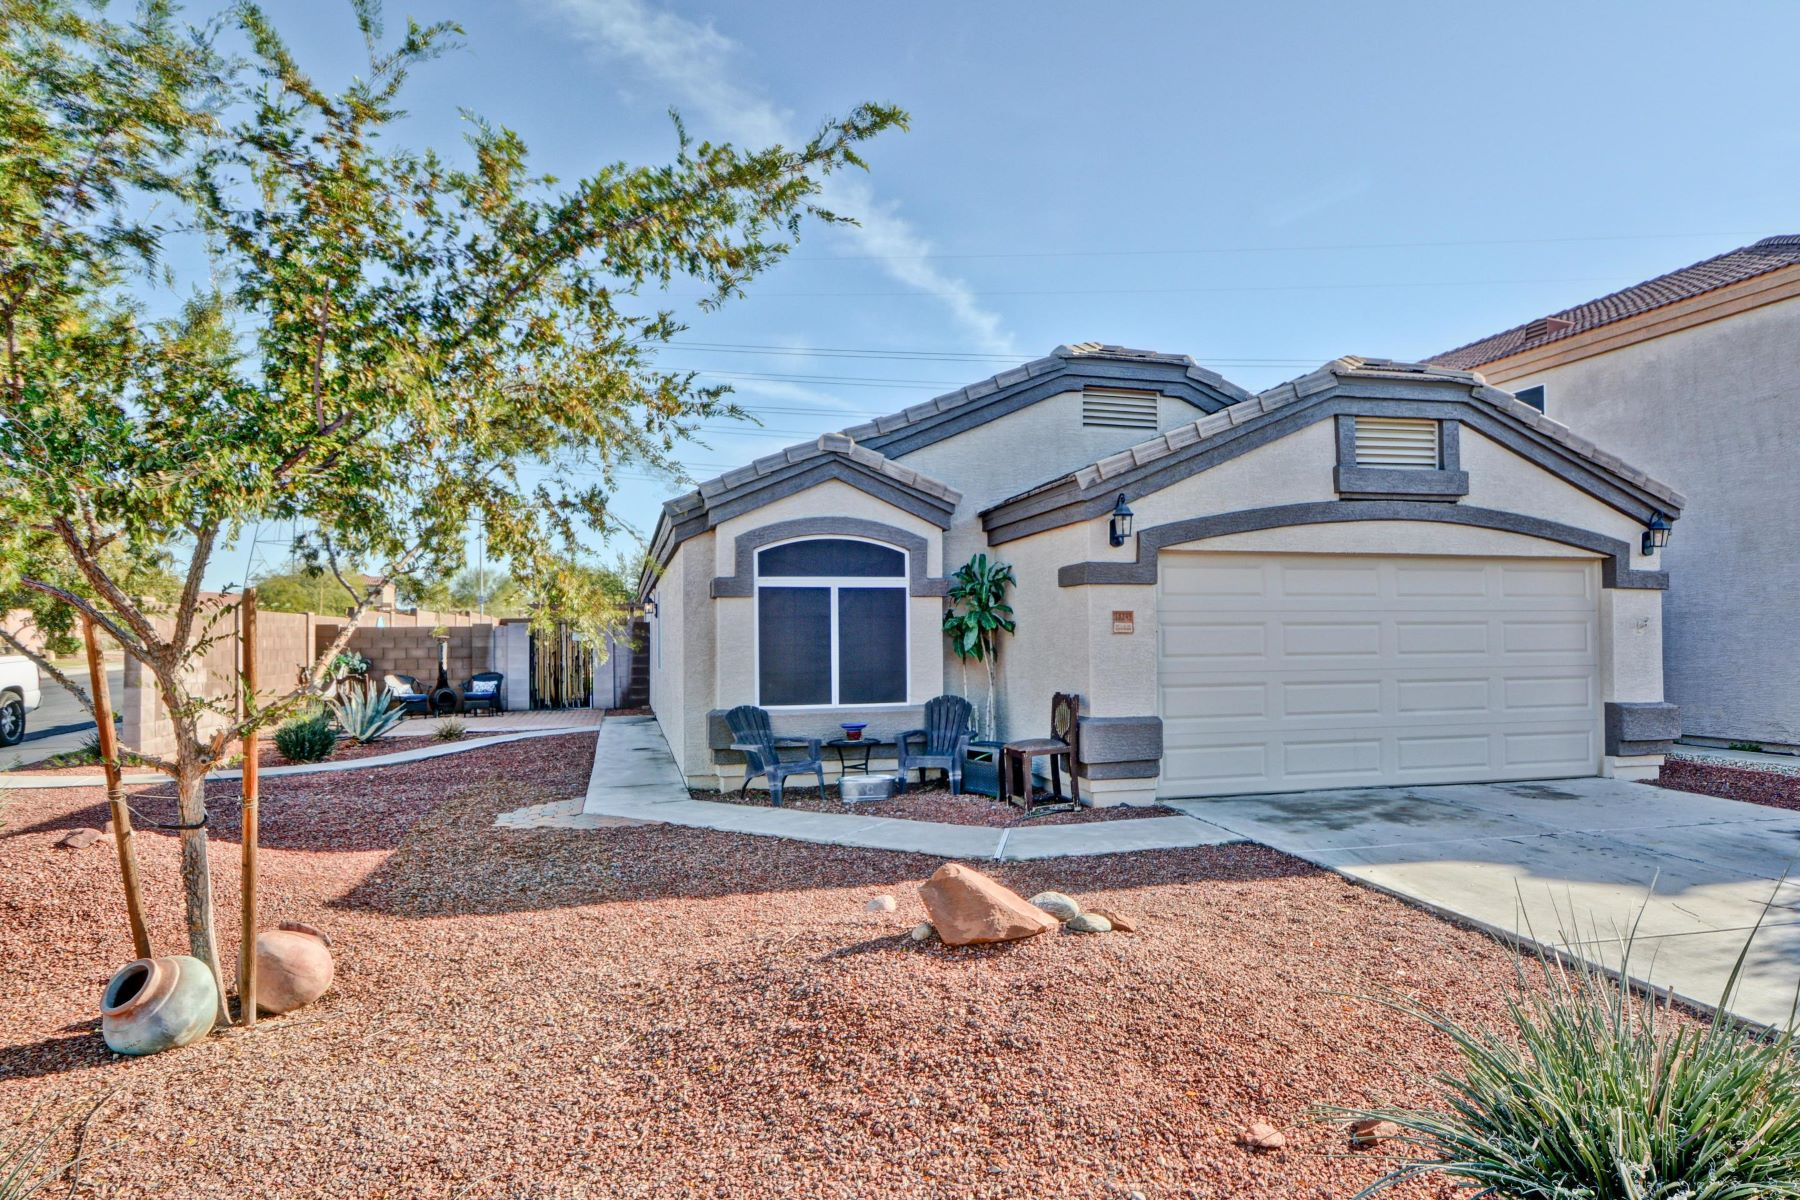 Single Family Homes for Active at Canyon Ridge West 18249 N 113TH AVE Surprise, Arizona 85378 United States